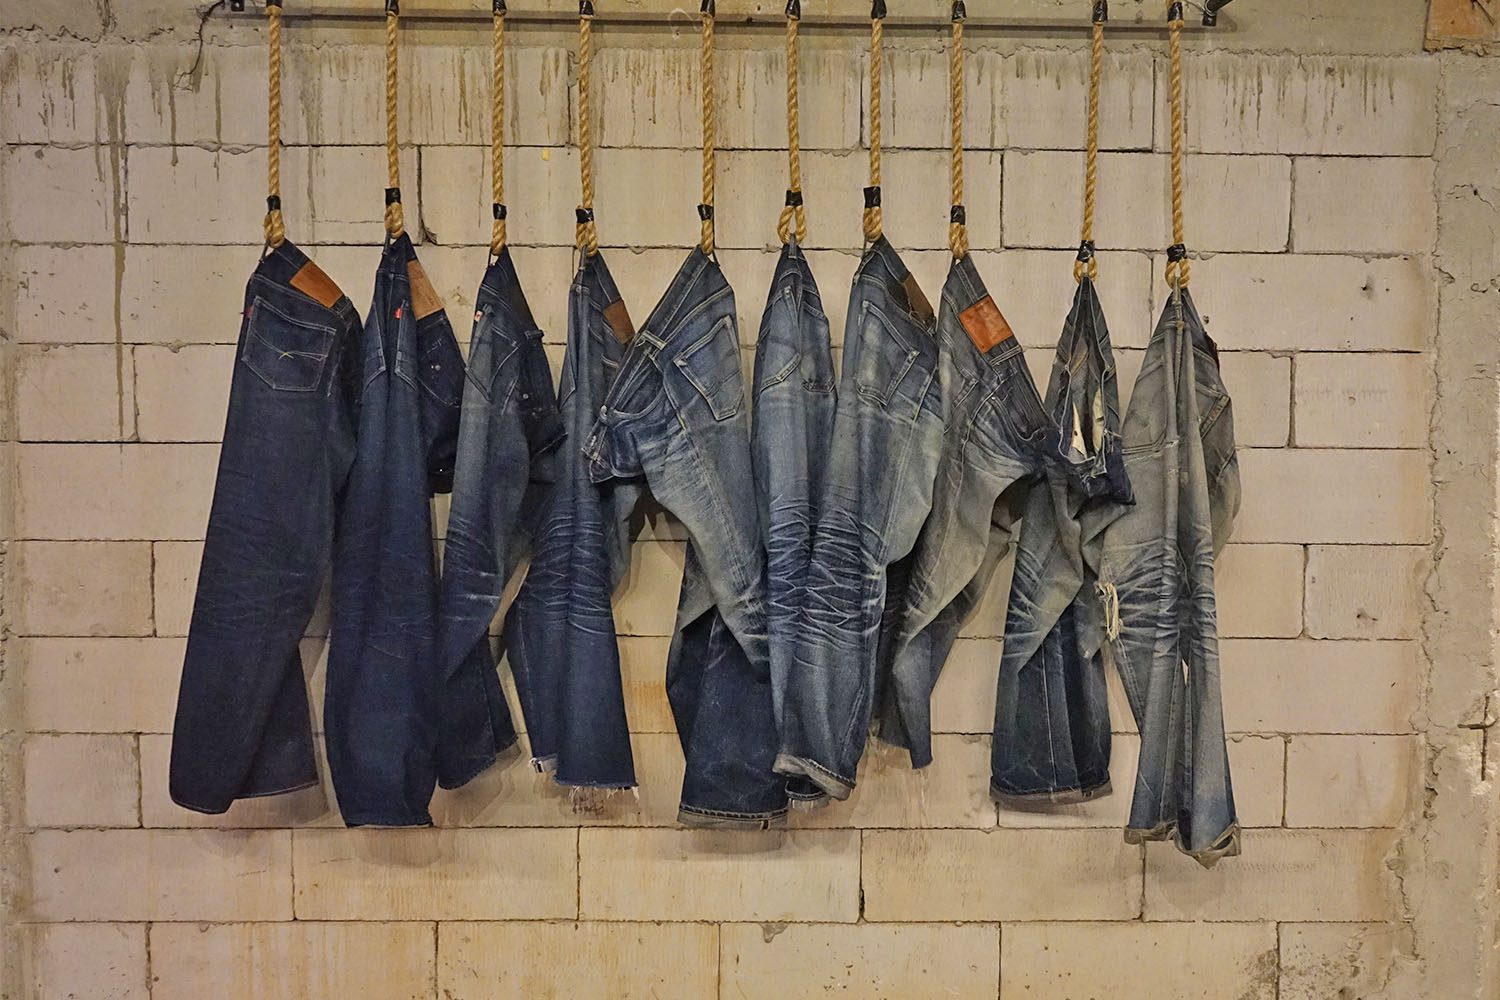 WALL OF FADES 2018 A DECADE OF WORK 5